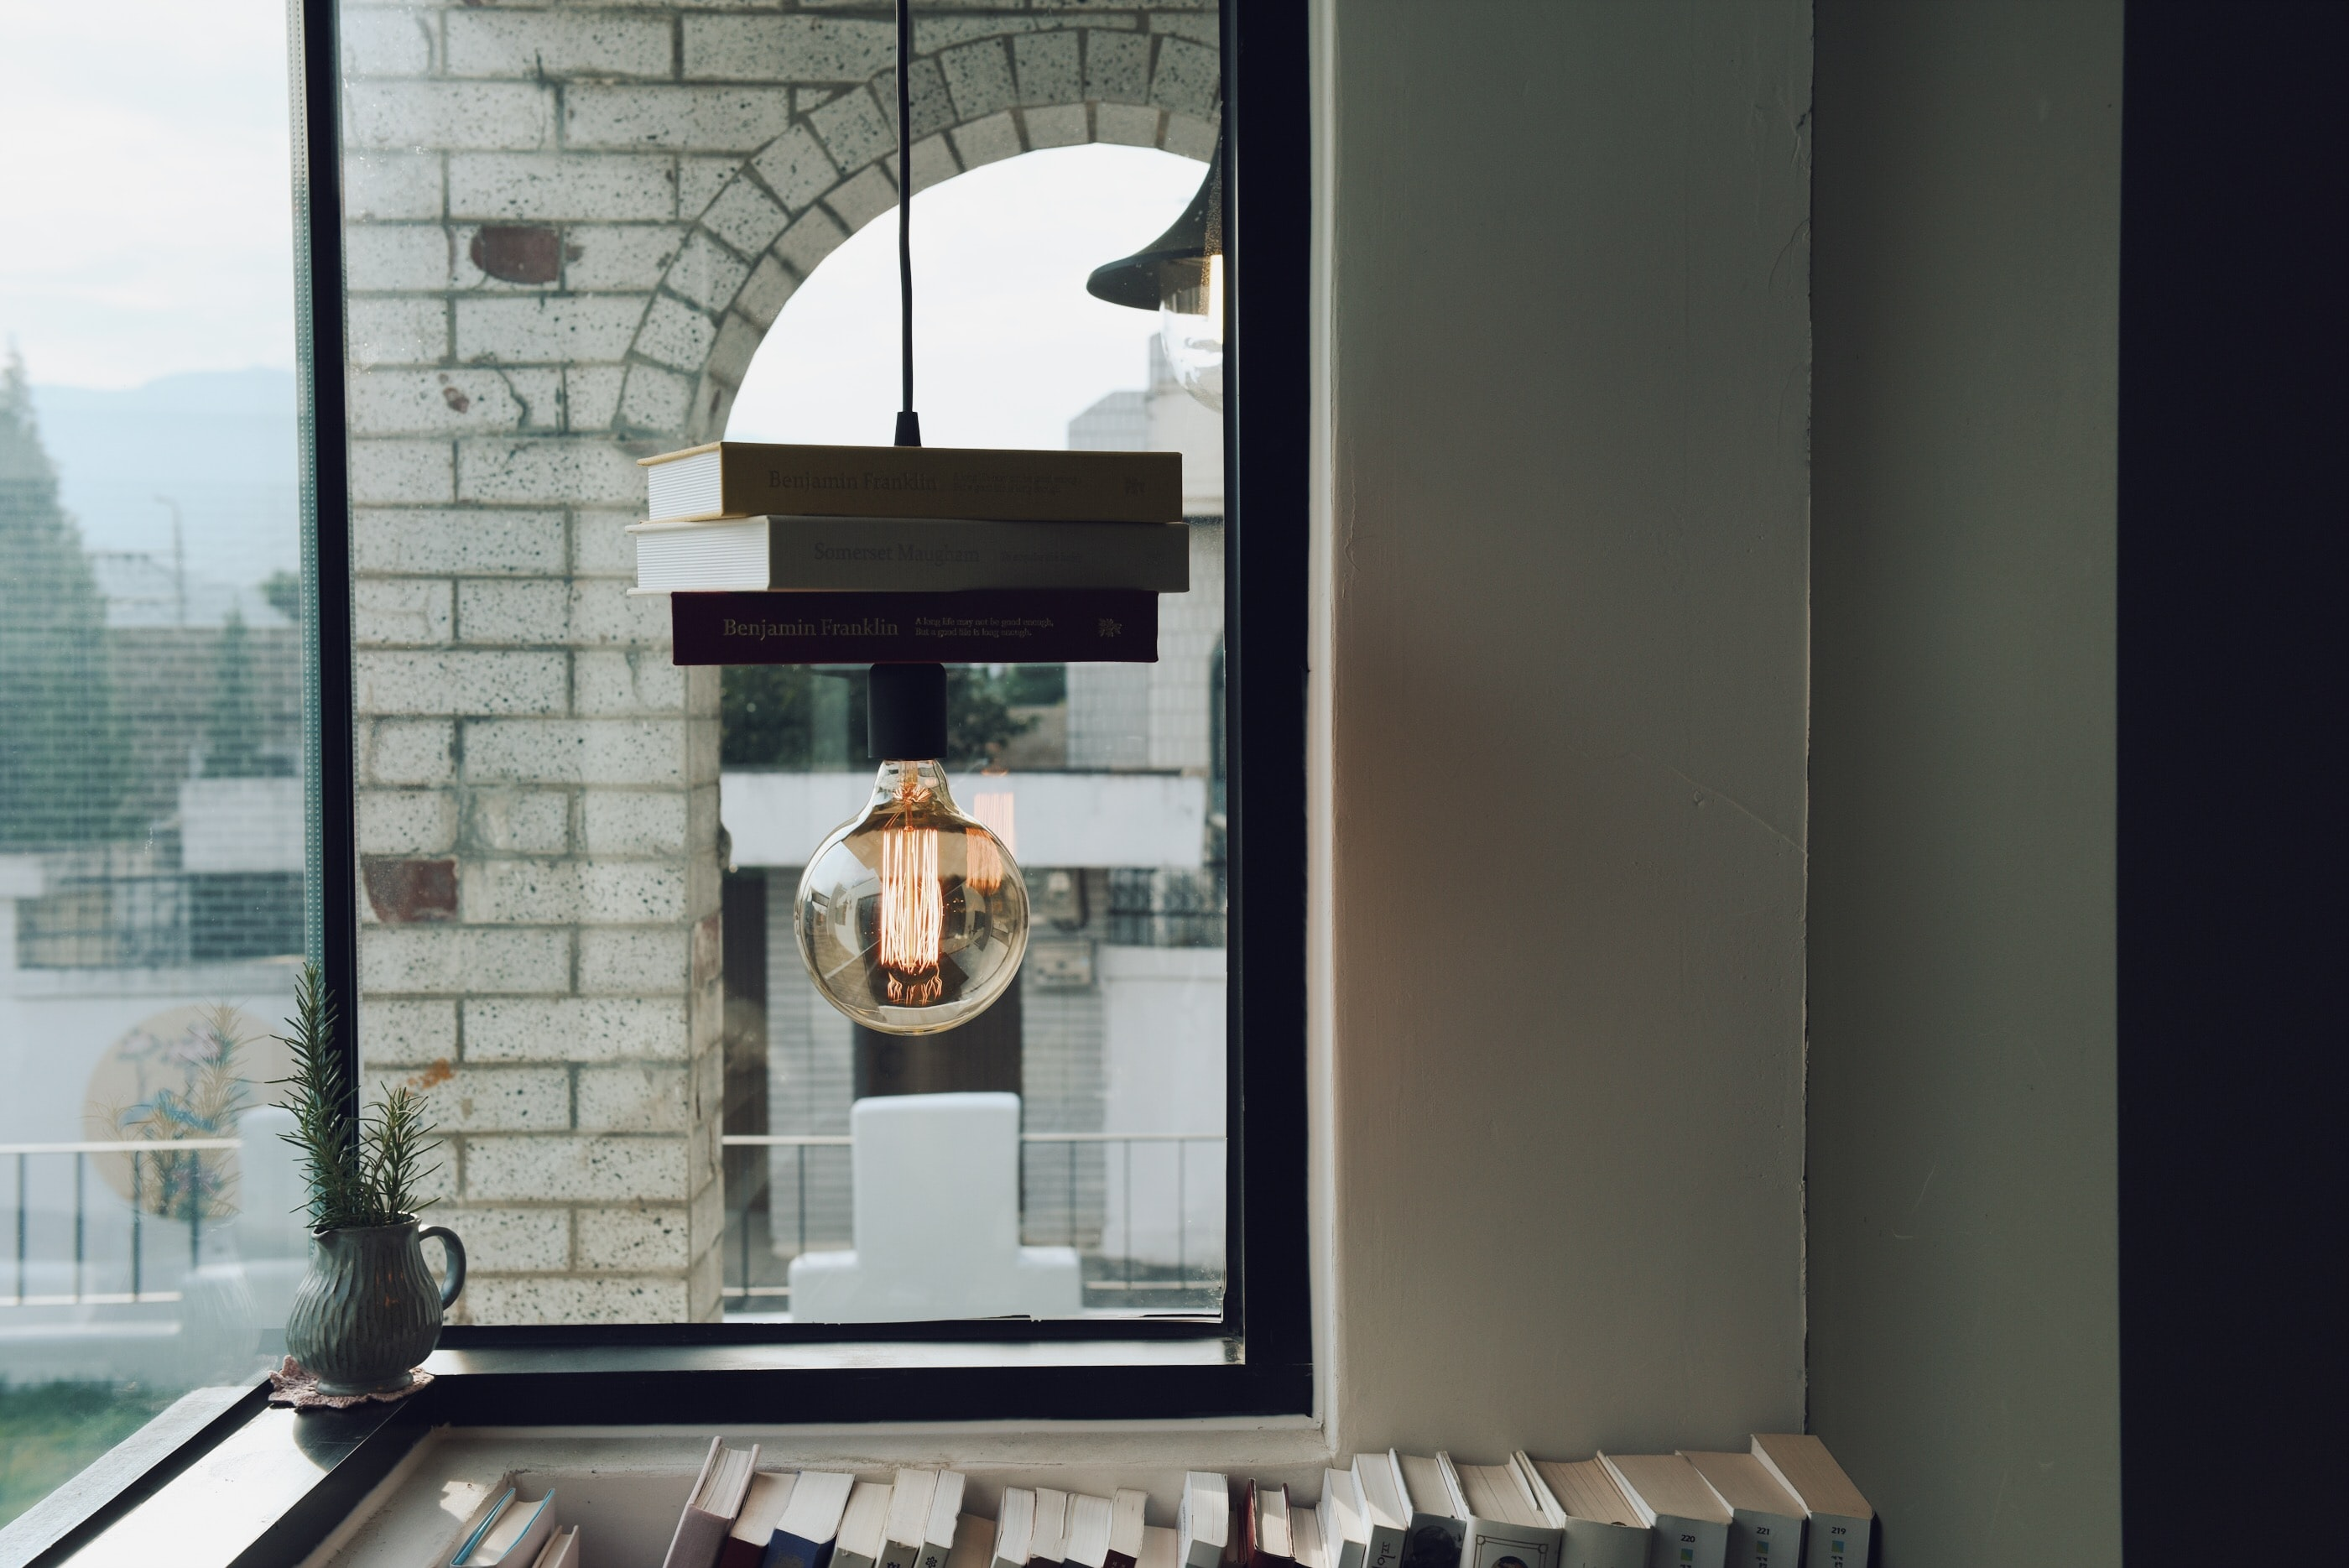 clear glass pendant lamp inside white and brown concrete room during daytime